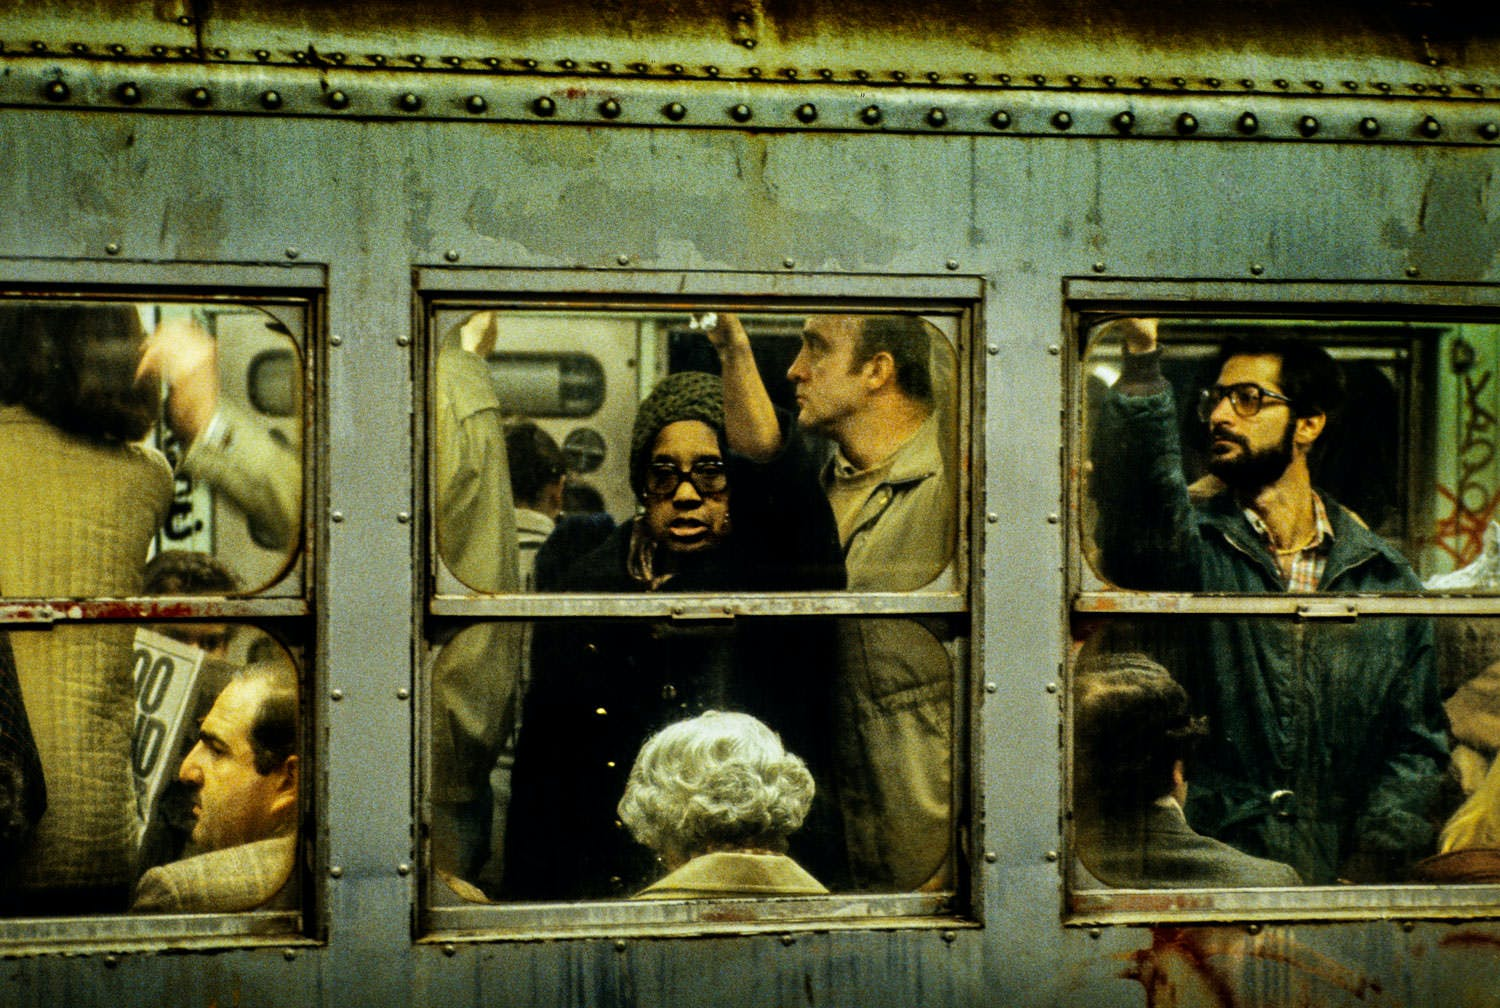 IN FIRST THREE MONTHS OF 1979 EIGHT PEOPLE WERE MURDERED ON THE NEW YORK SUBWAY